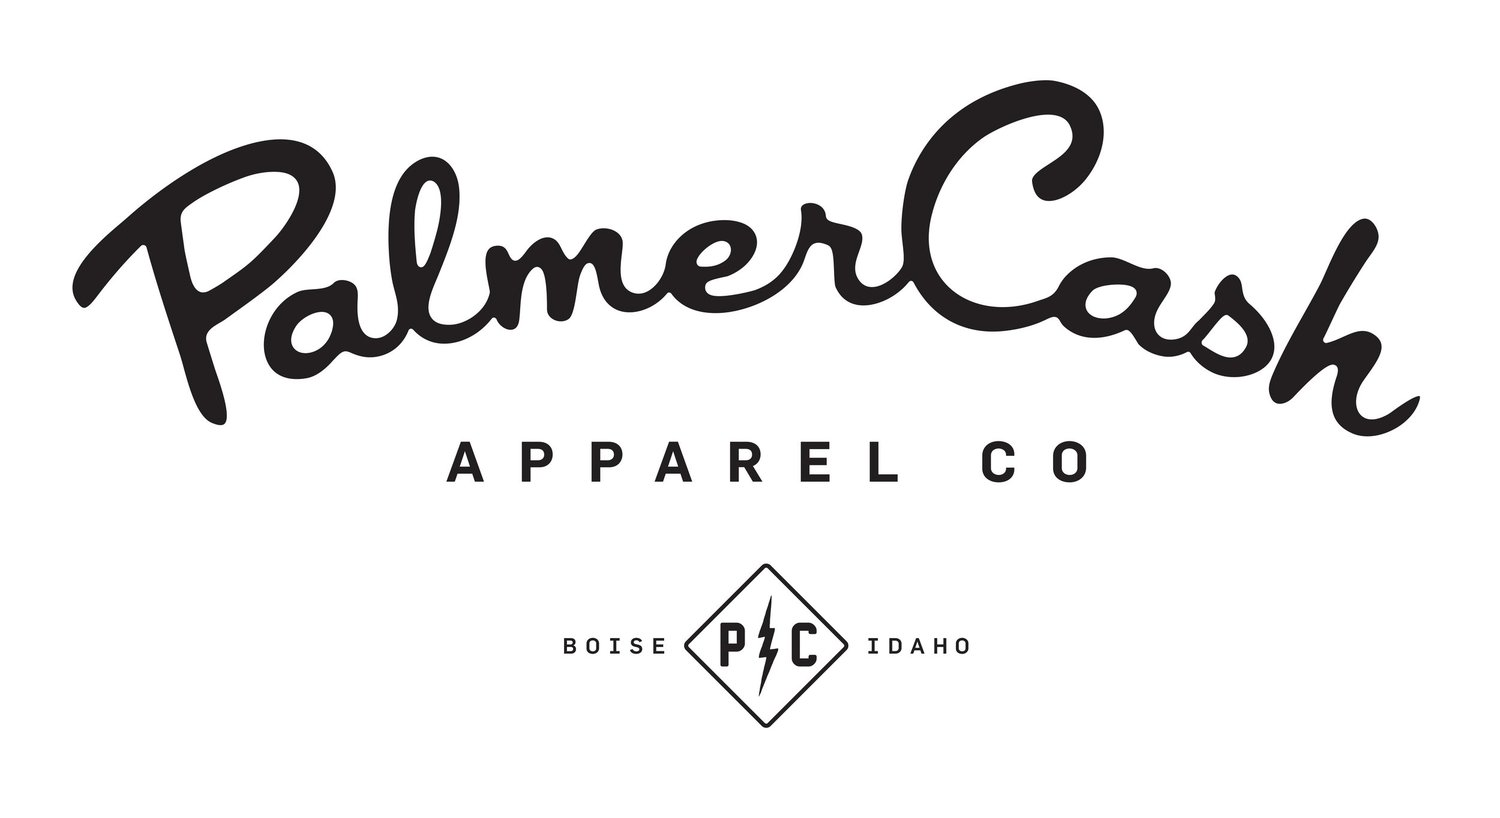 PalmerCash Custom Apparel - Custom T-shirts - Custom Tank Tops